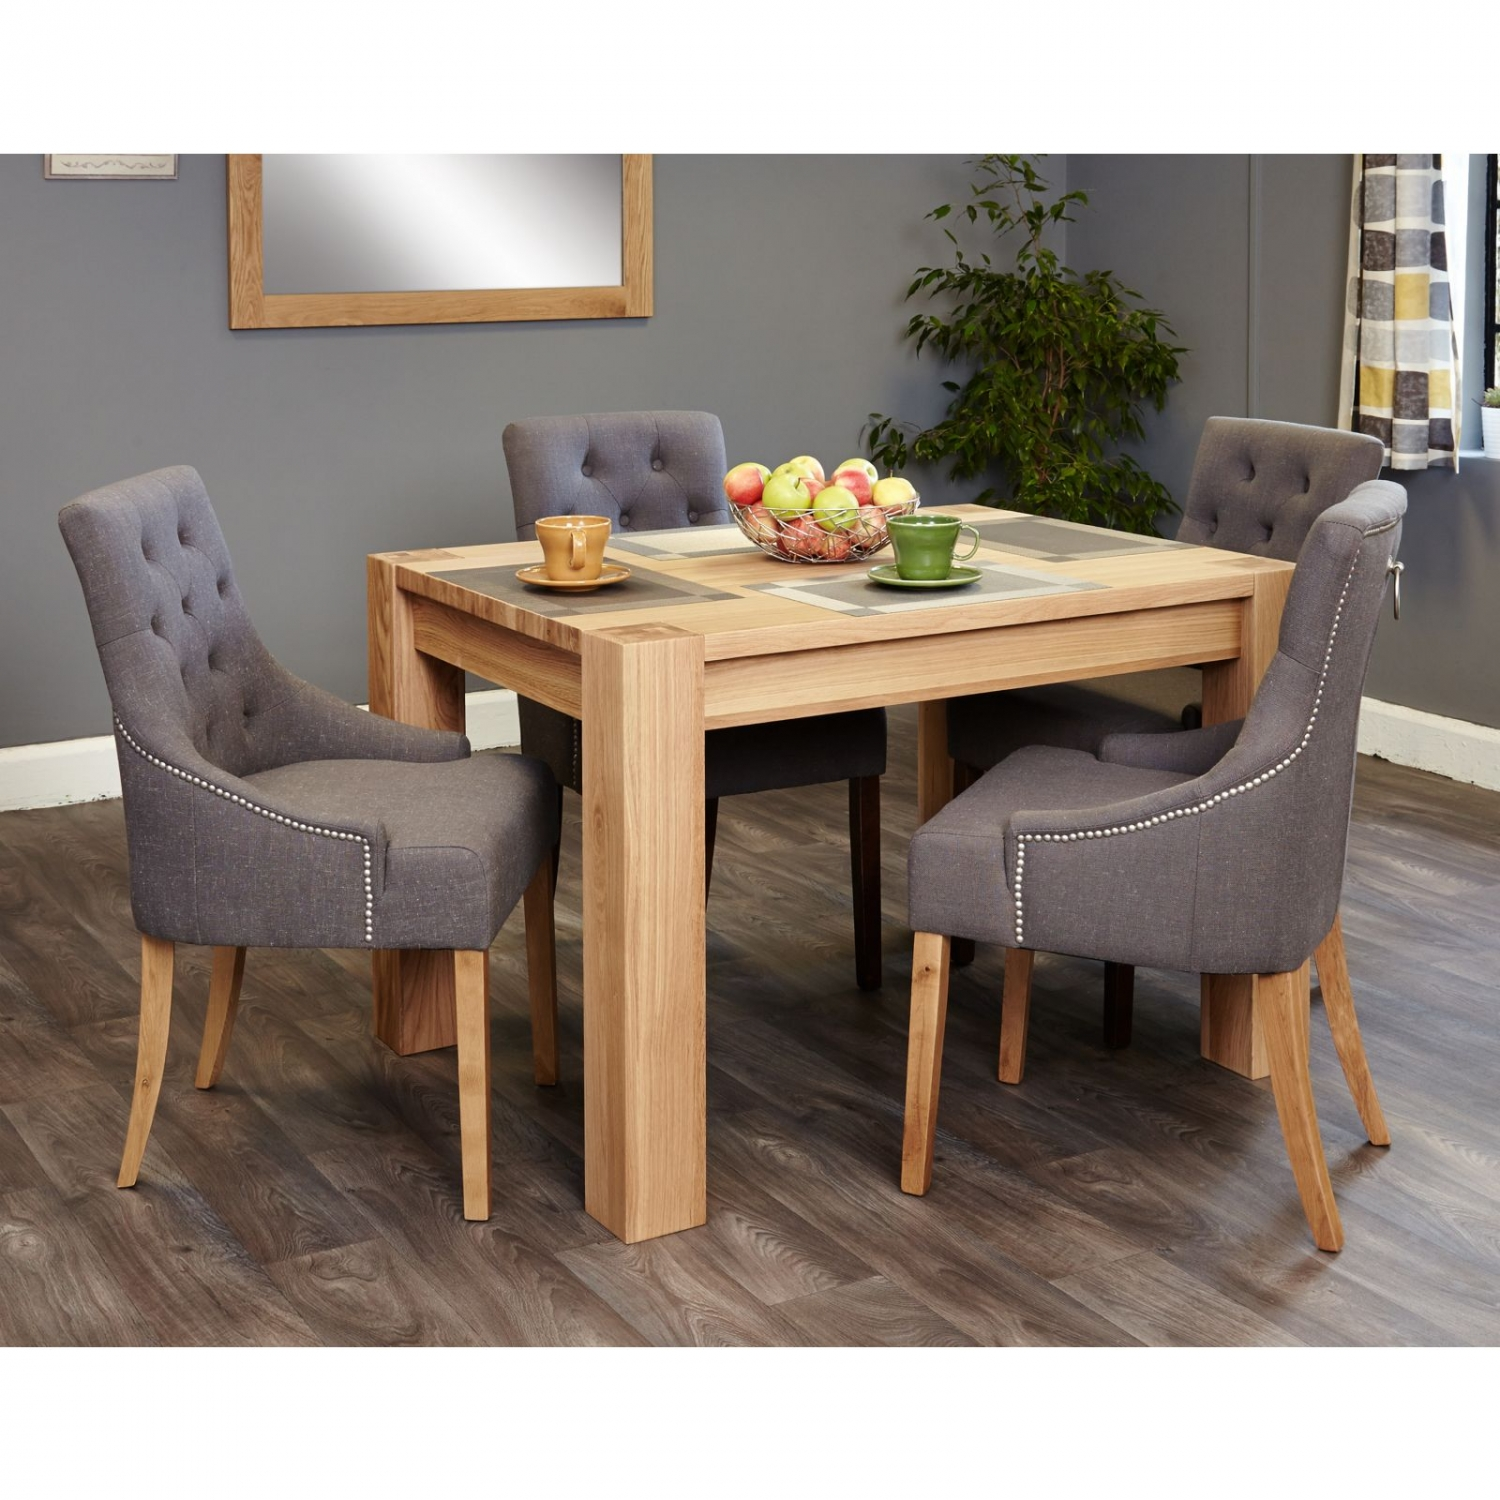 Salisbury Oak Furniture Small Dining Table And Four Luxury